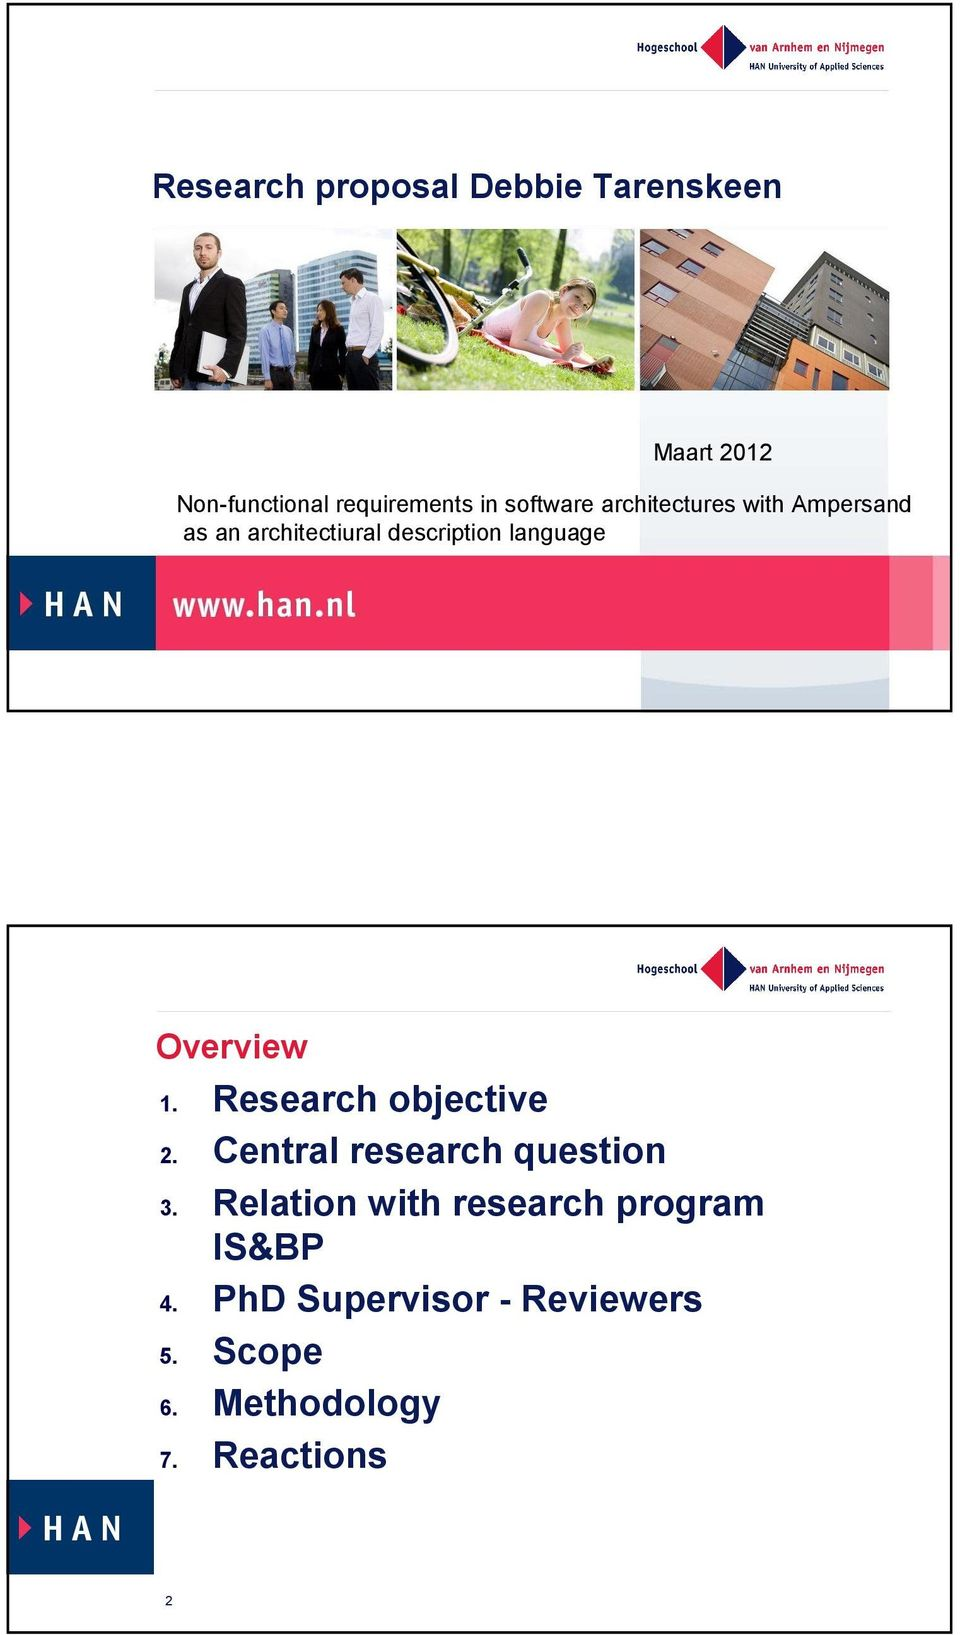 Overview 1. Research objective 2. Central research question 3.